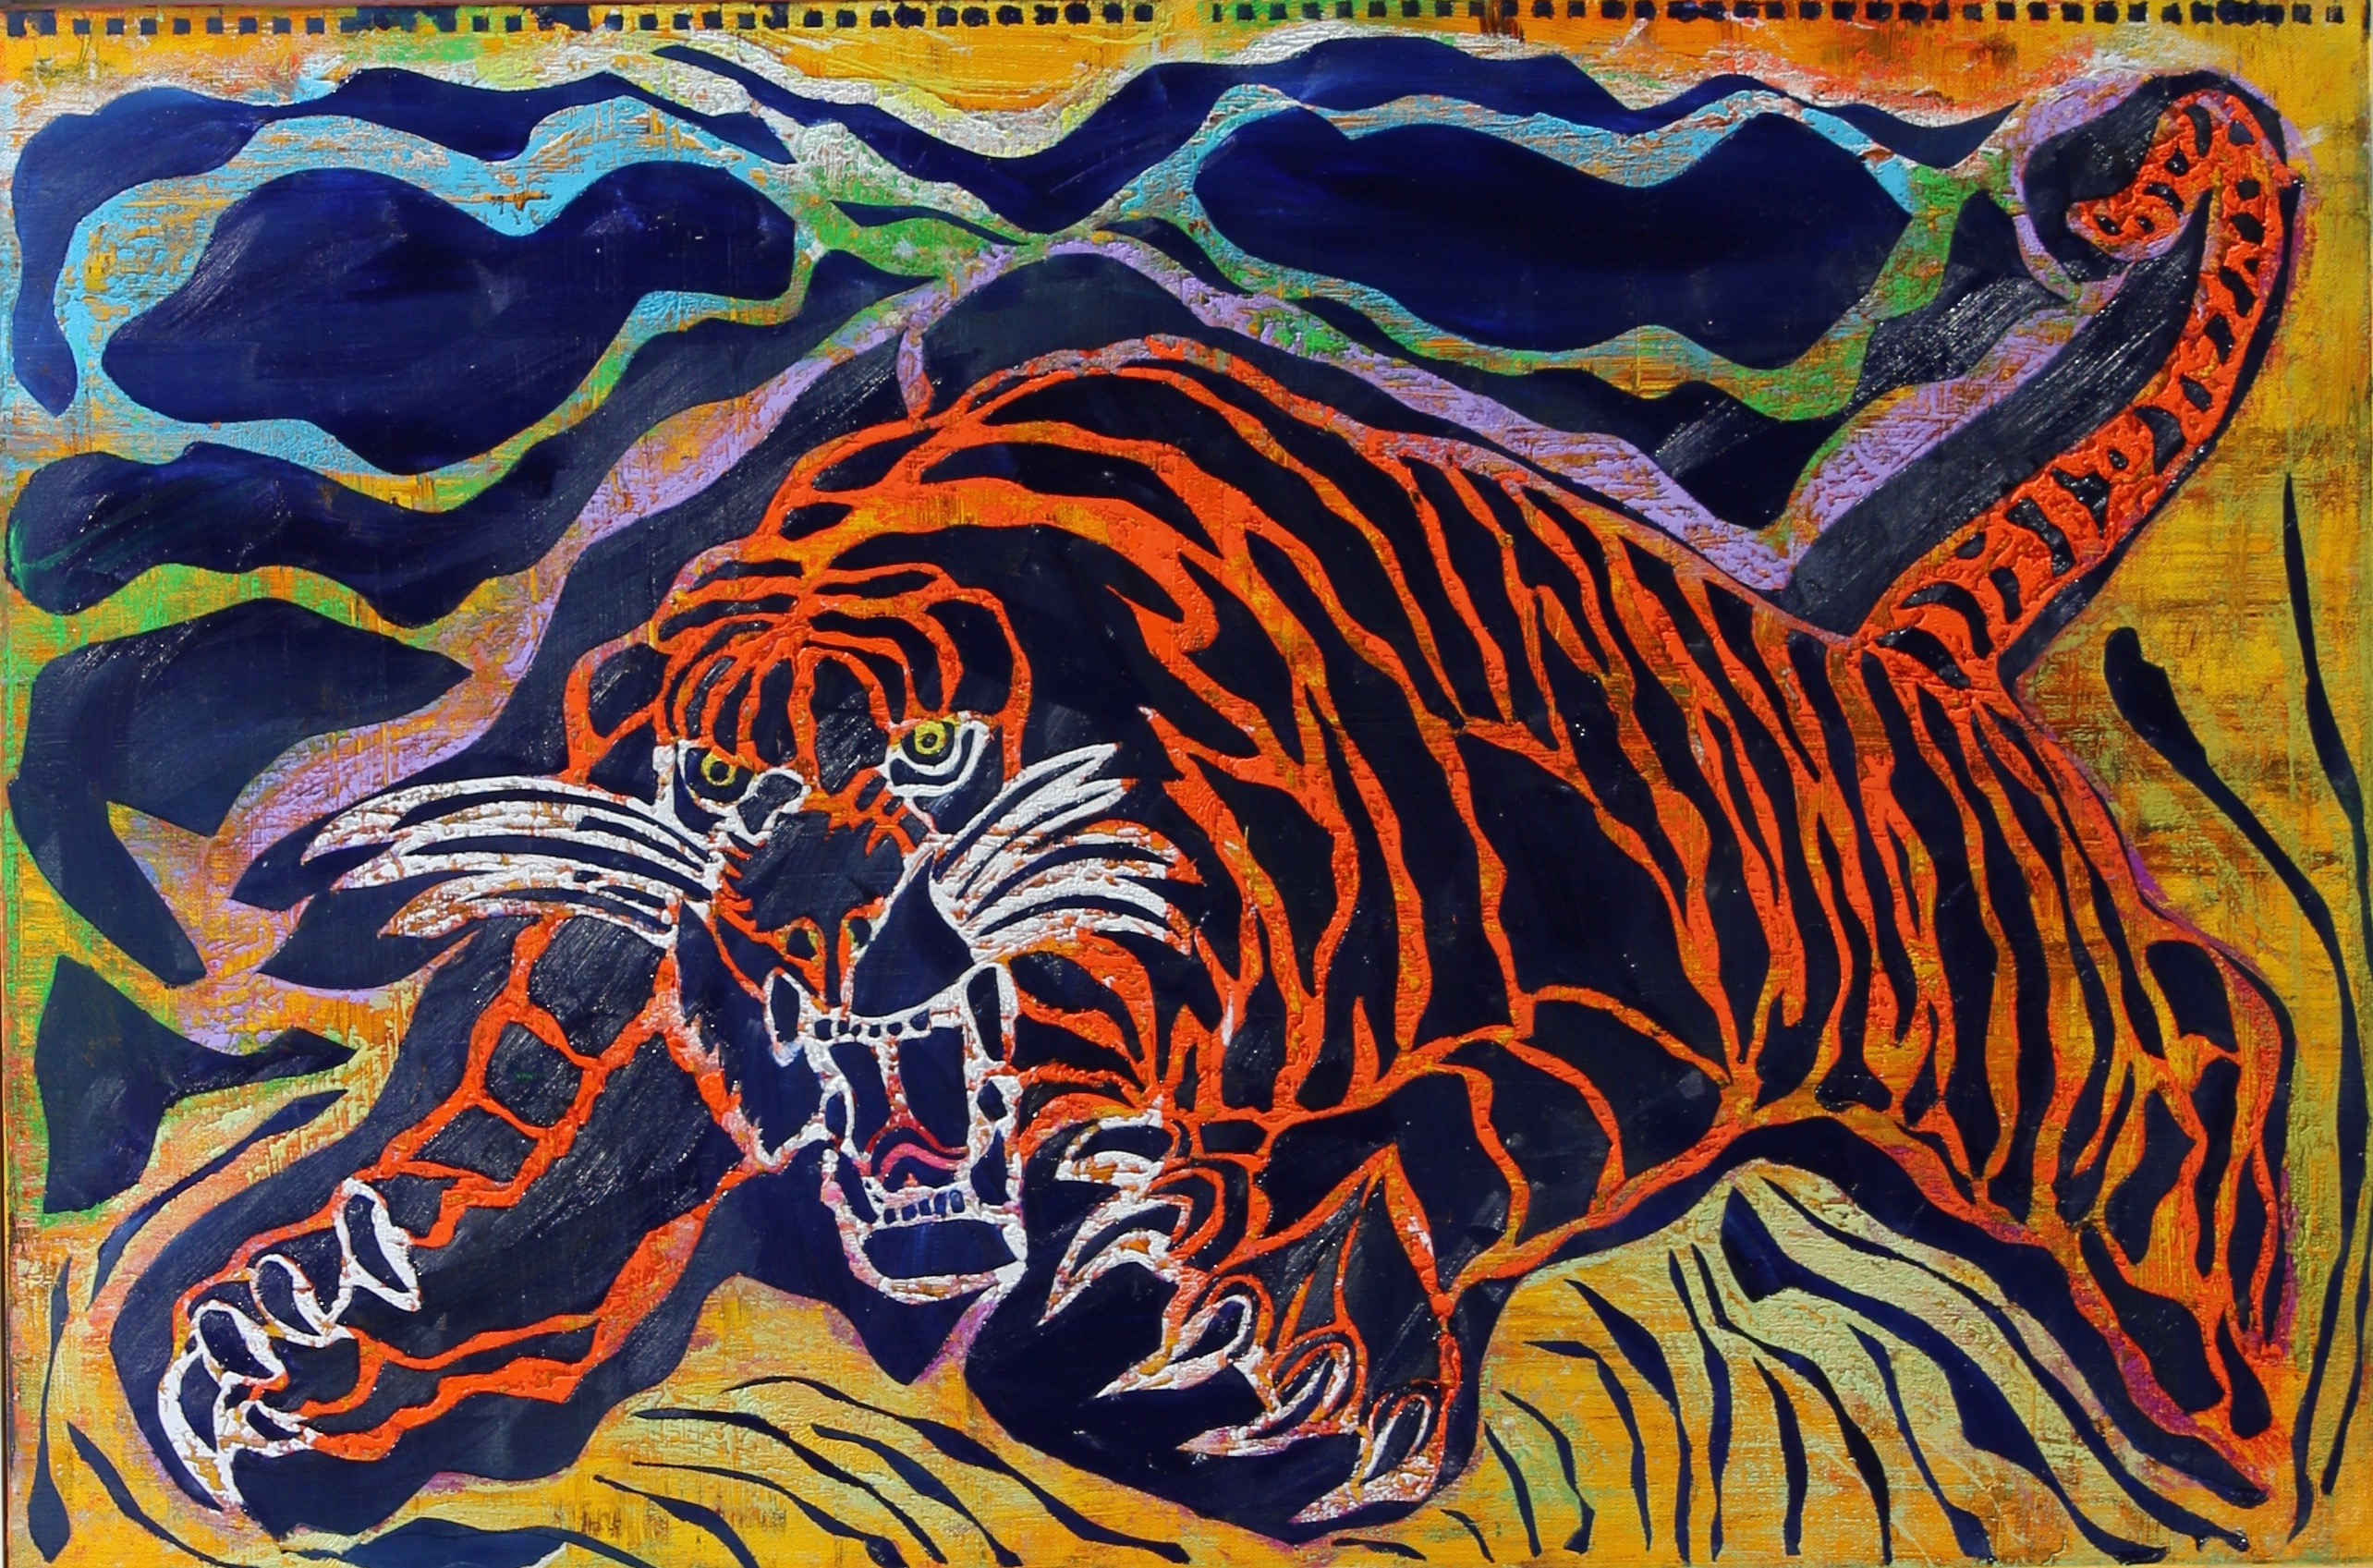 Tiger Attack Blue by Stephen Clegg at www.cleggart.com